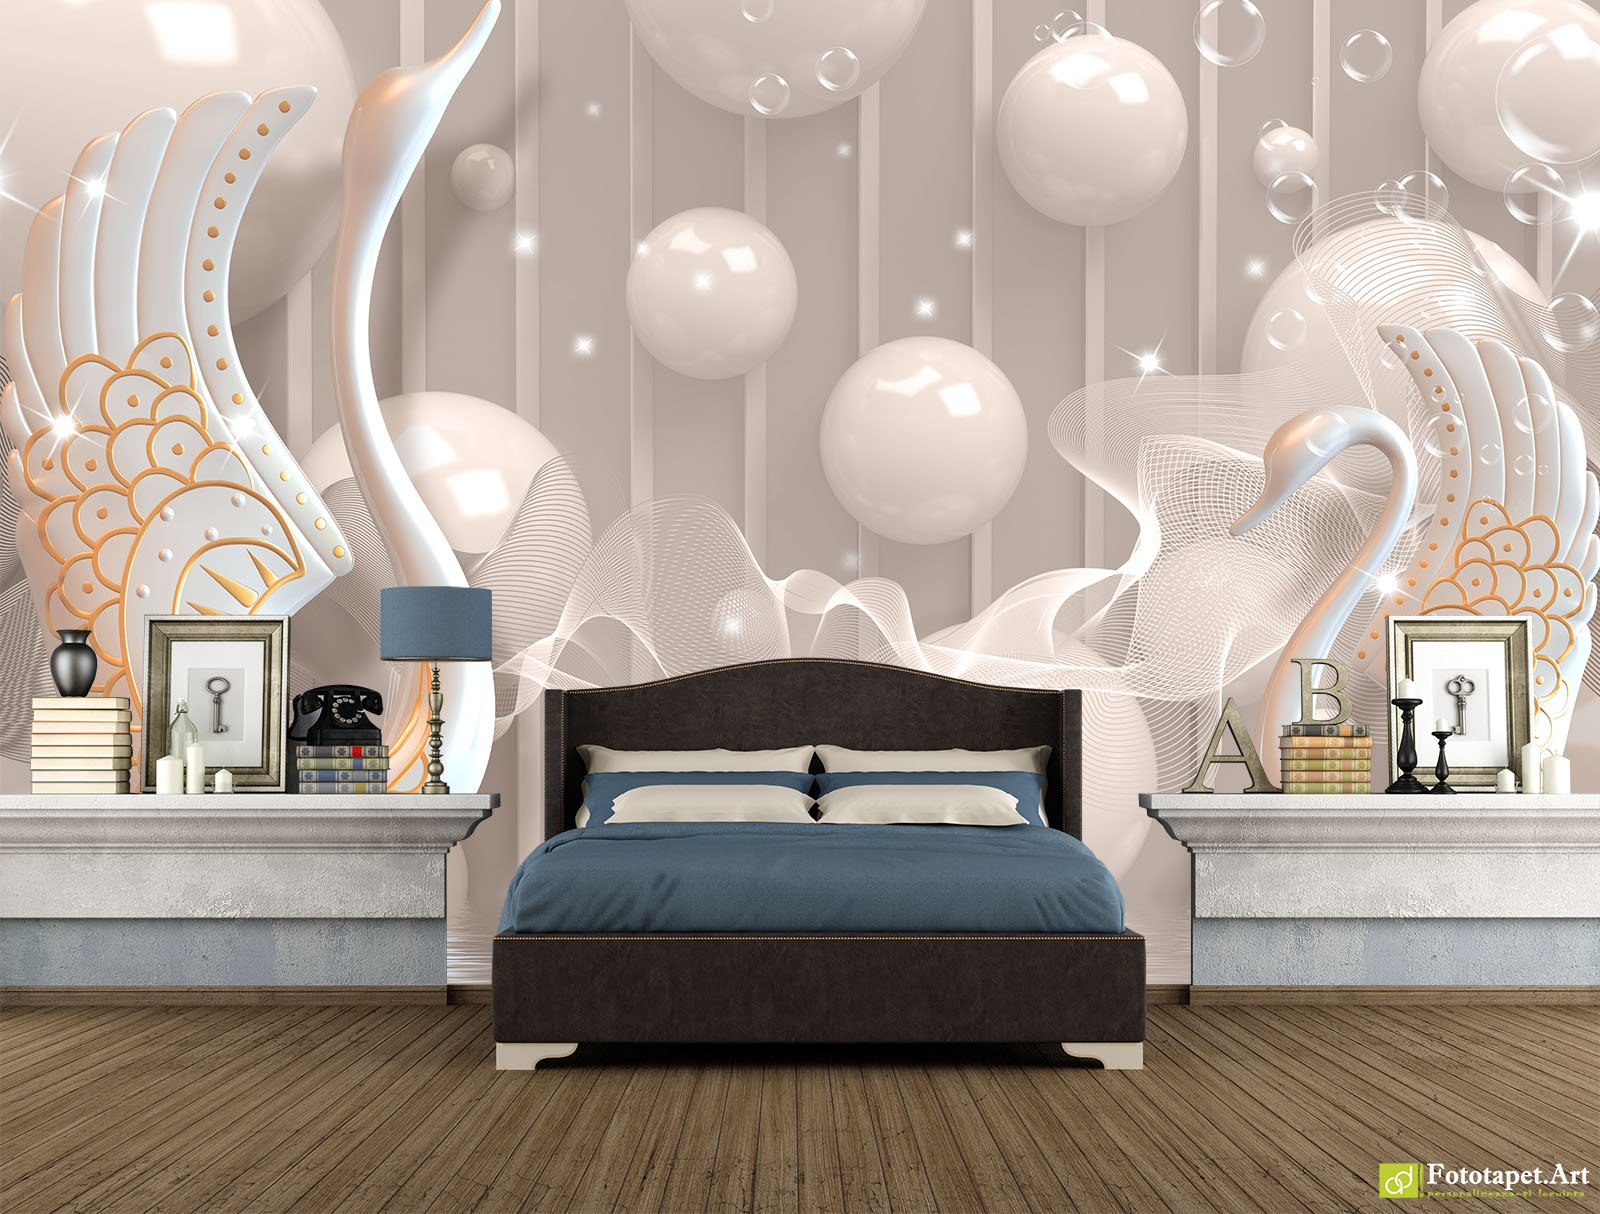 Fototapete 3d Preturi Photo Wallpaper 3d Effect Swans And Balls Fototapet Art